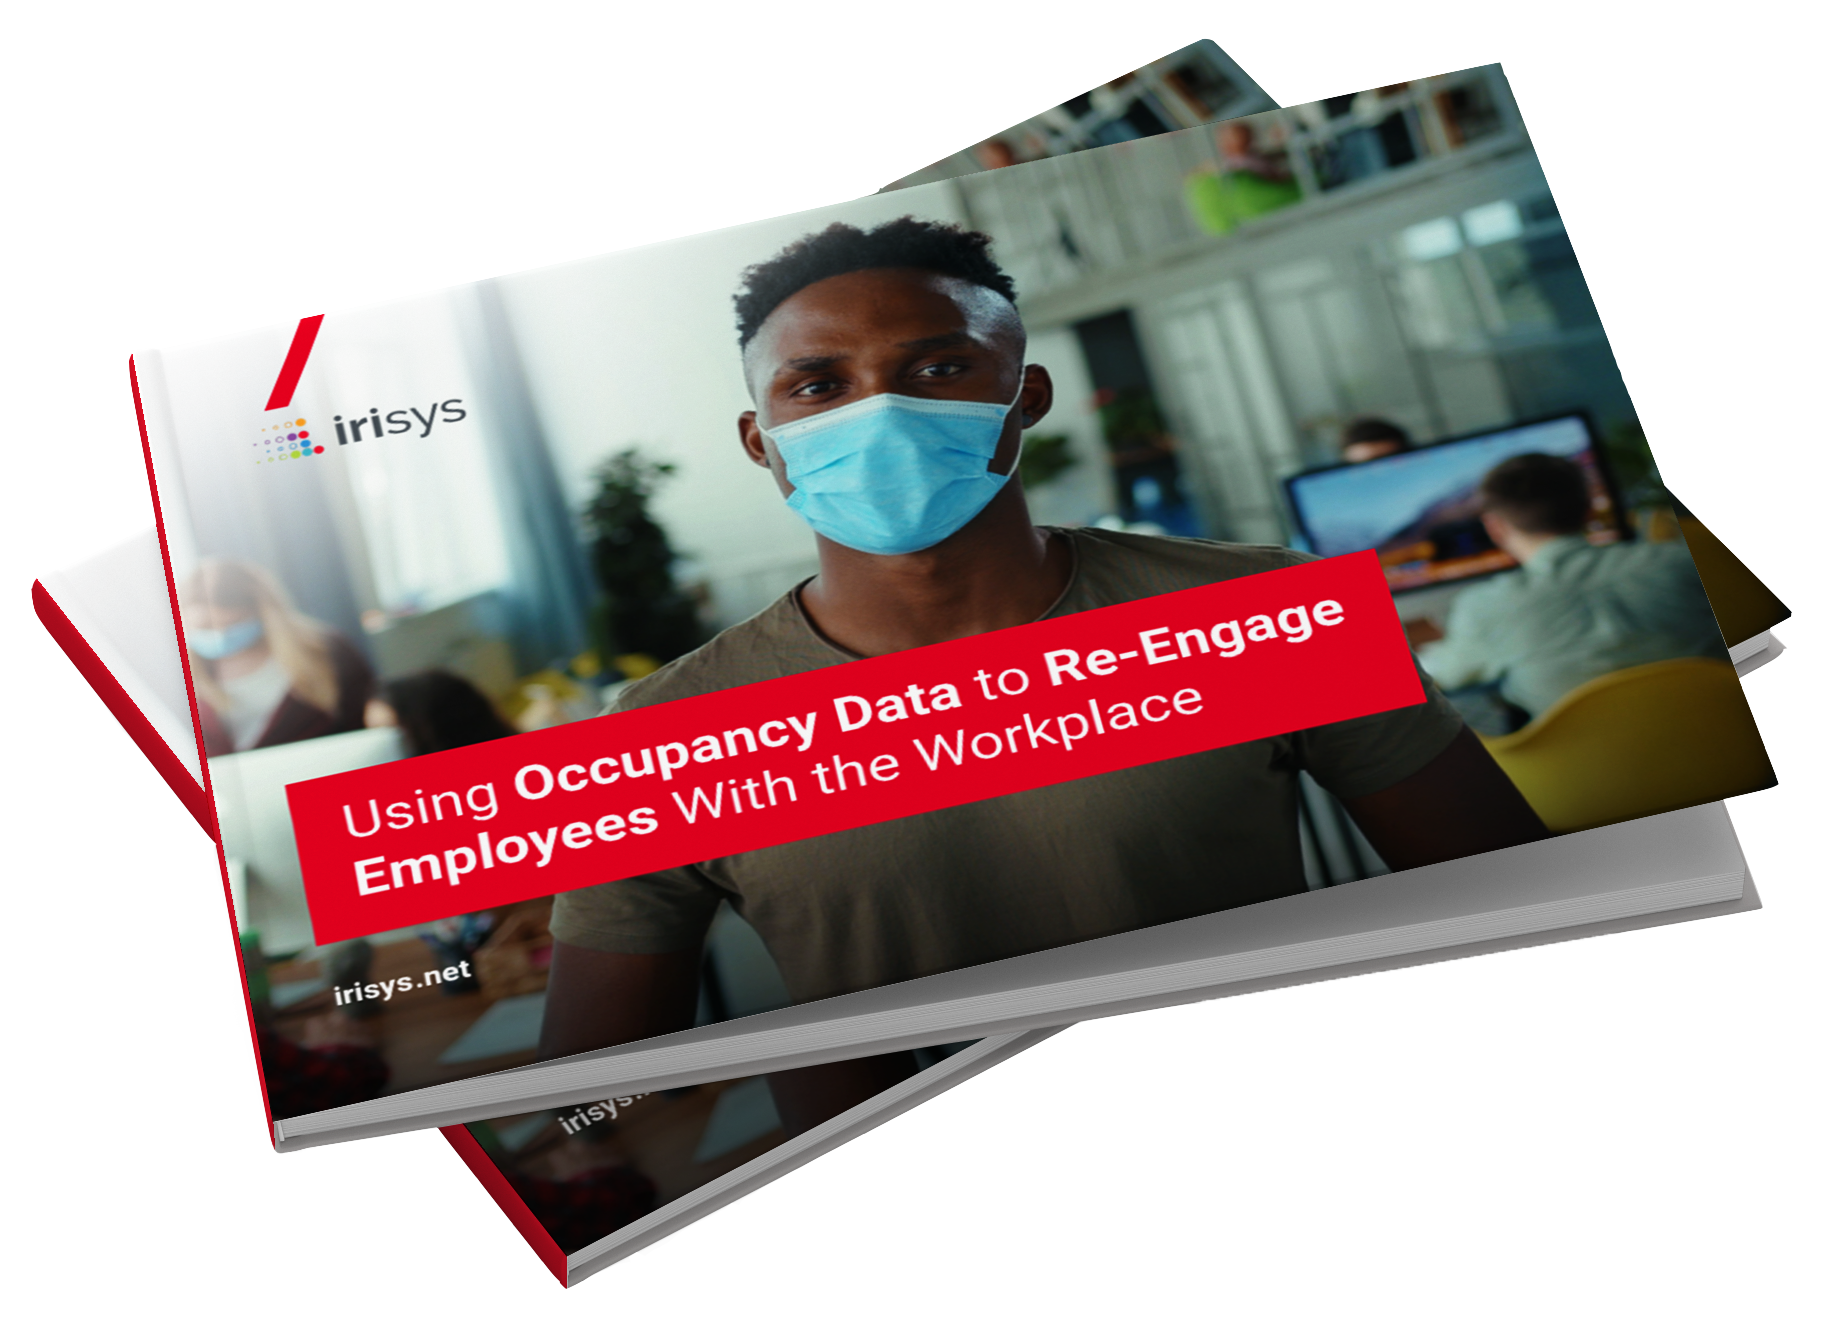 eBook - using occupancy data to re-engage employes with the workplace - no shadow - cropped